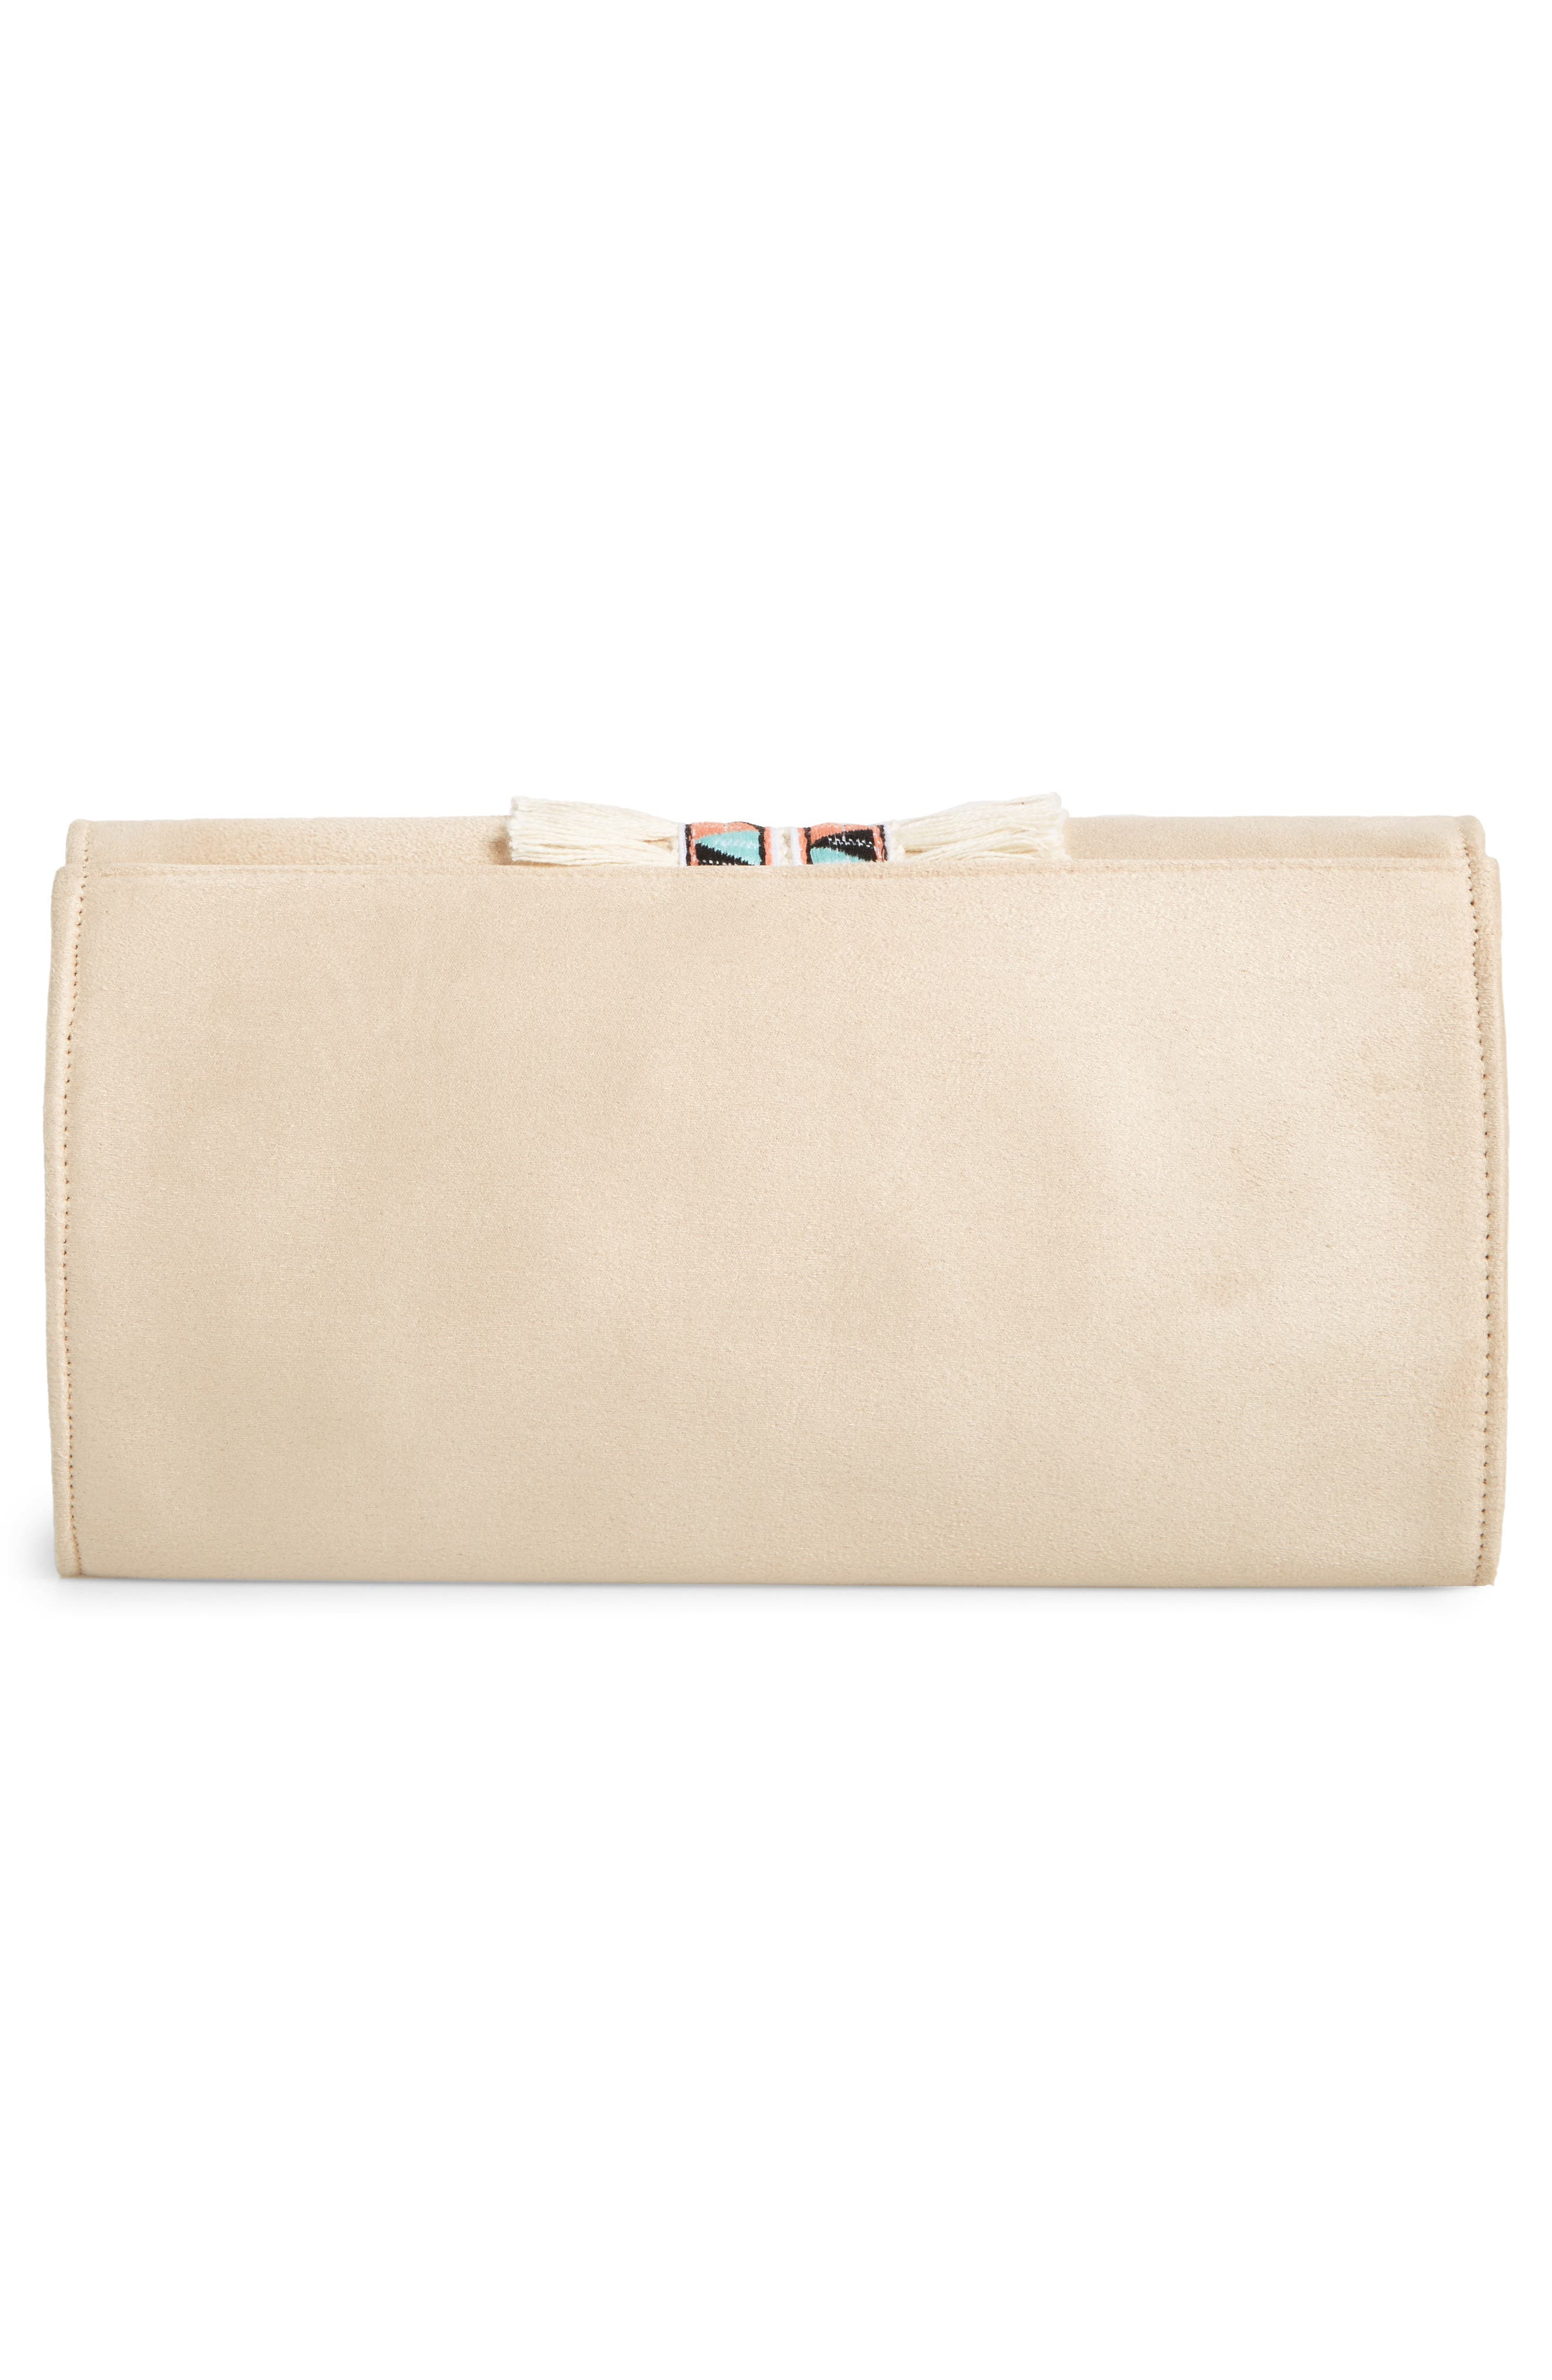 Rada Embroidered Clutch,                             Alternate thumbnail 2, color,                             Sand